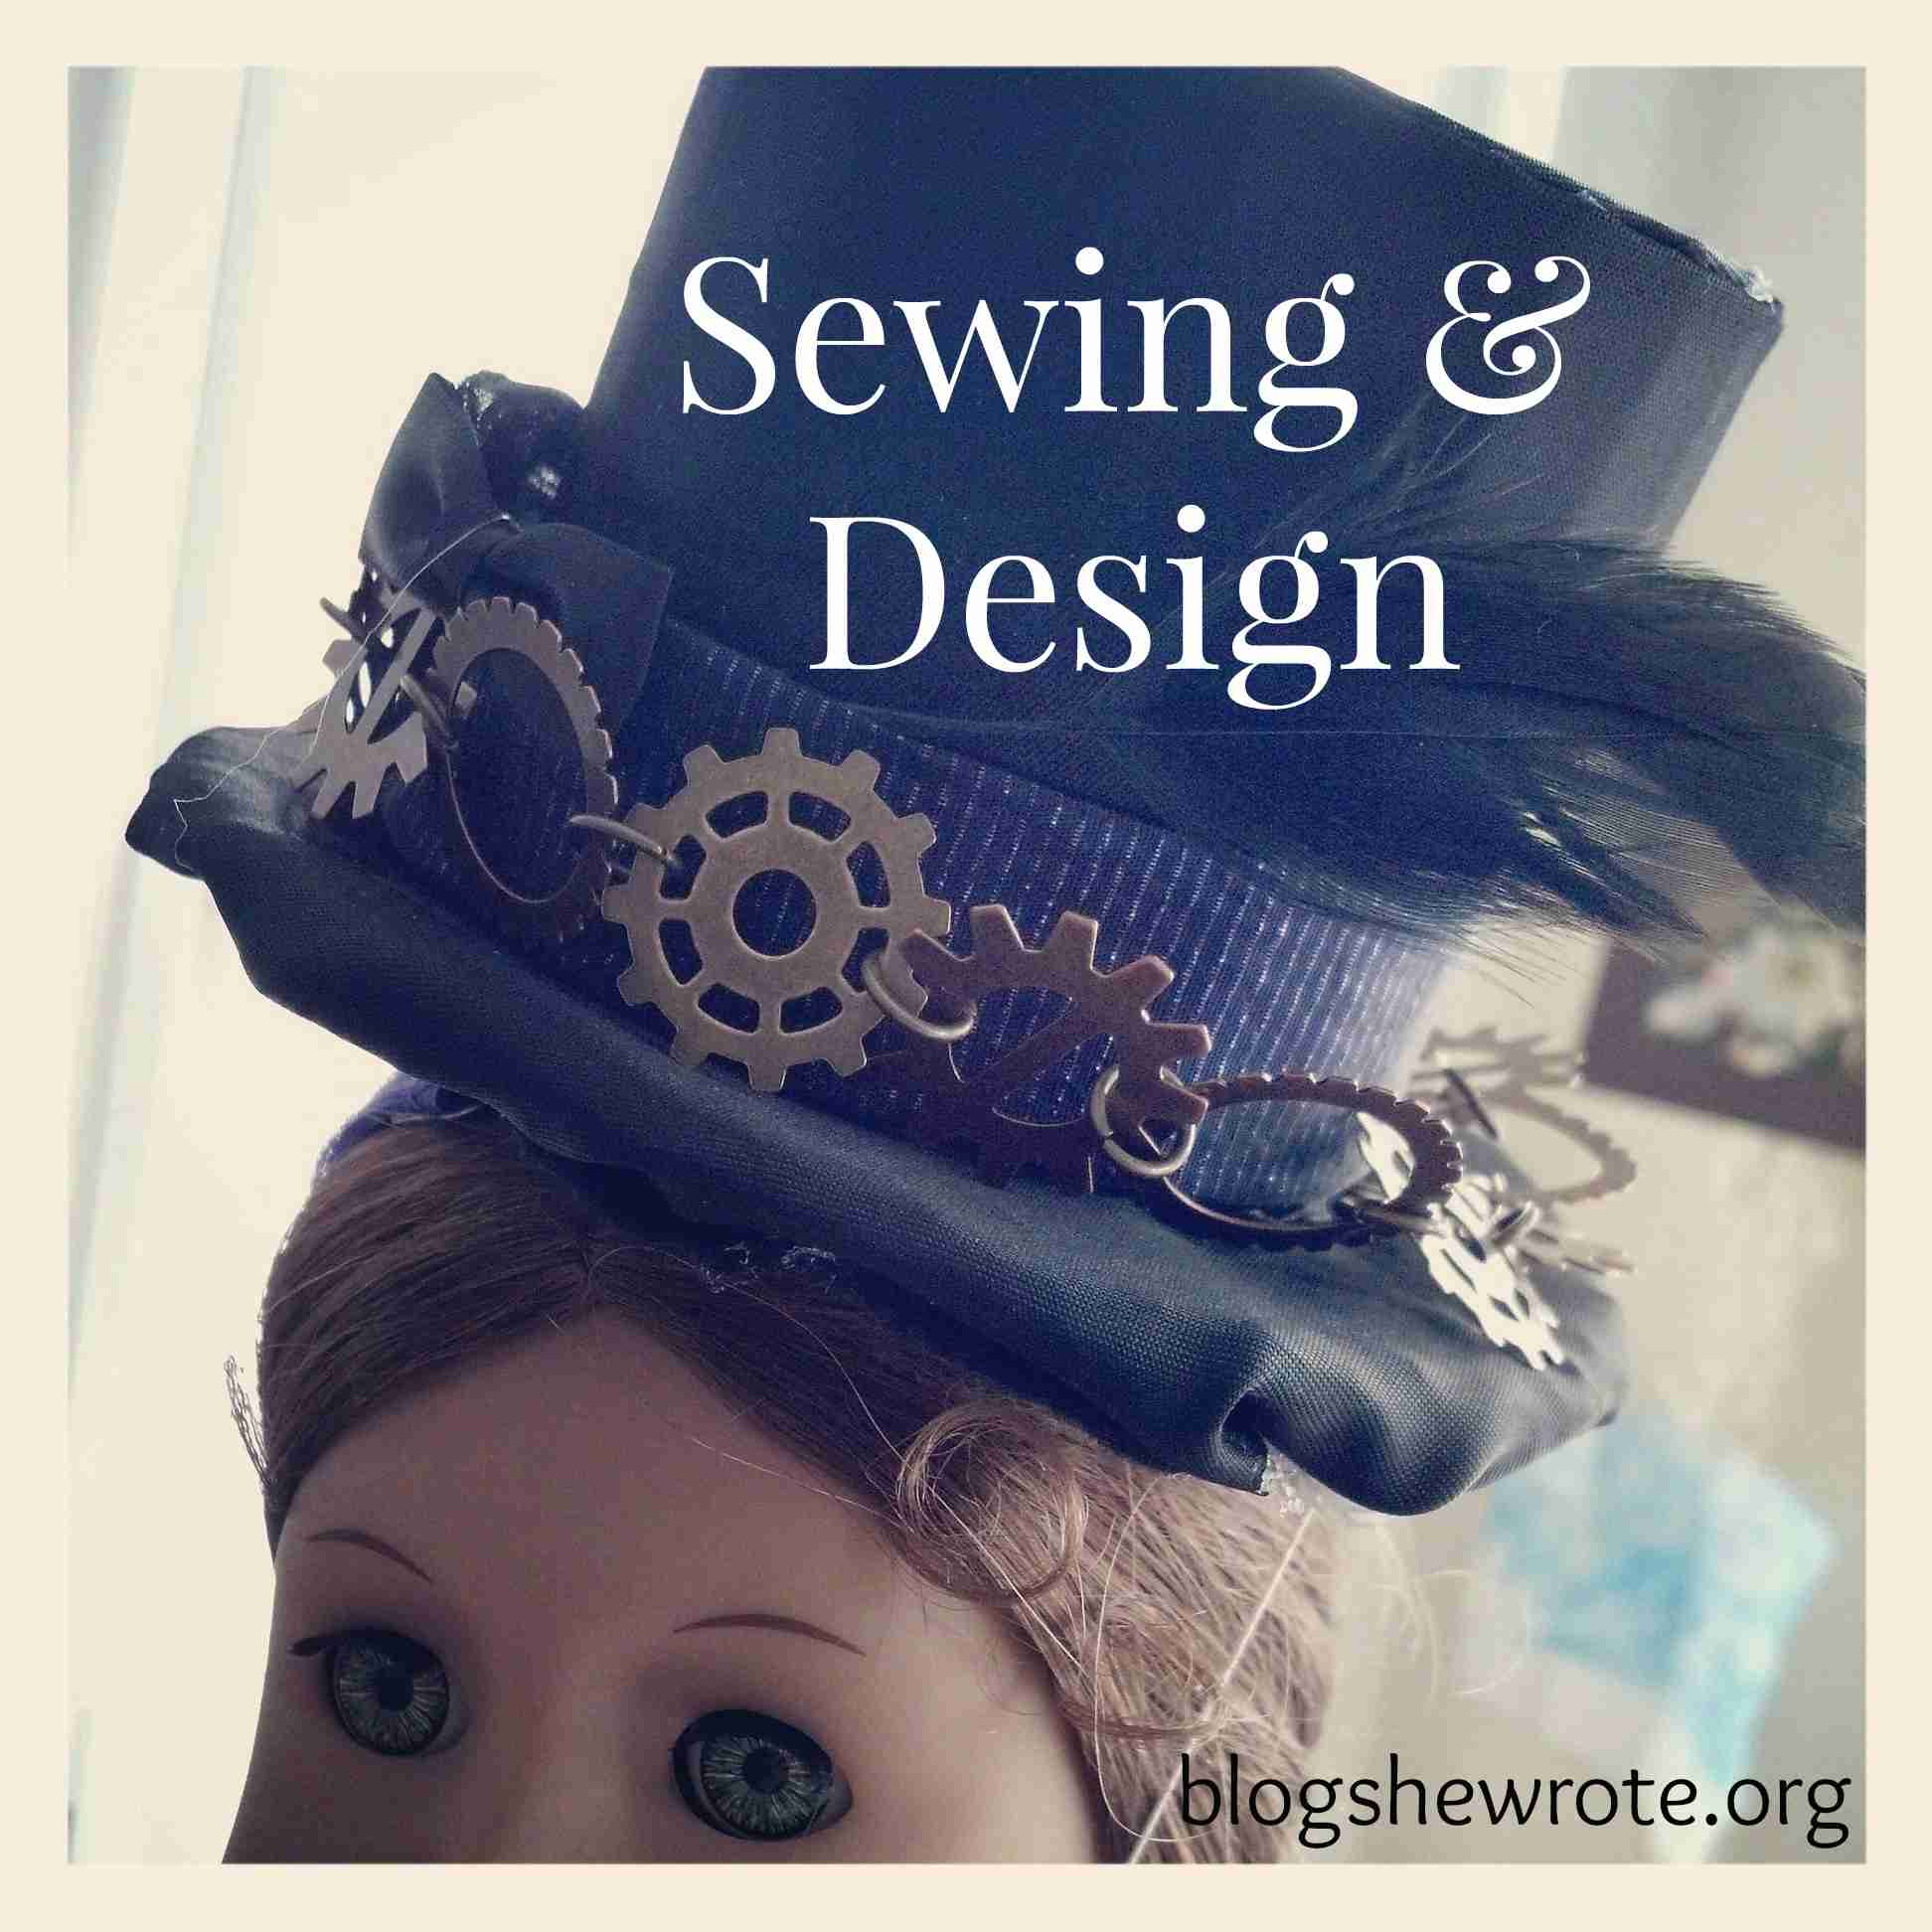 Blog, She Wrote: Sewing & Design Projects